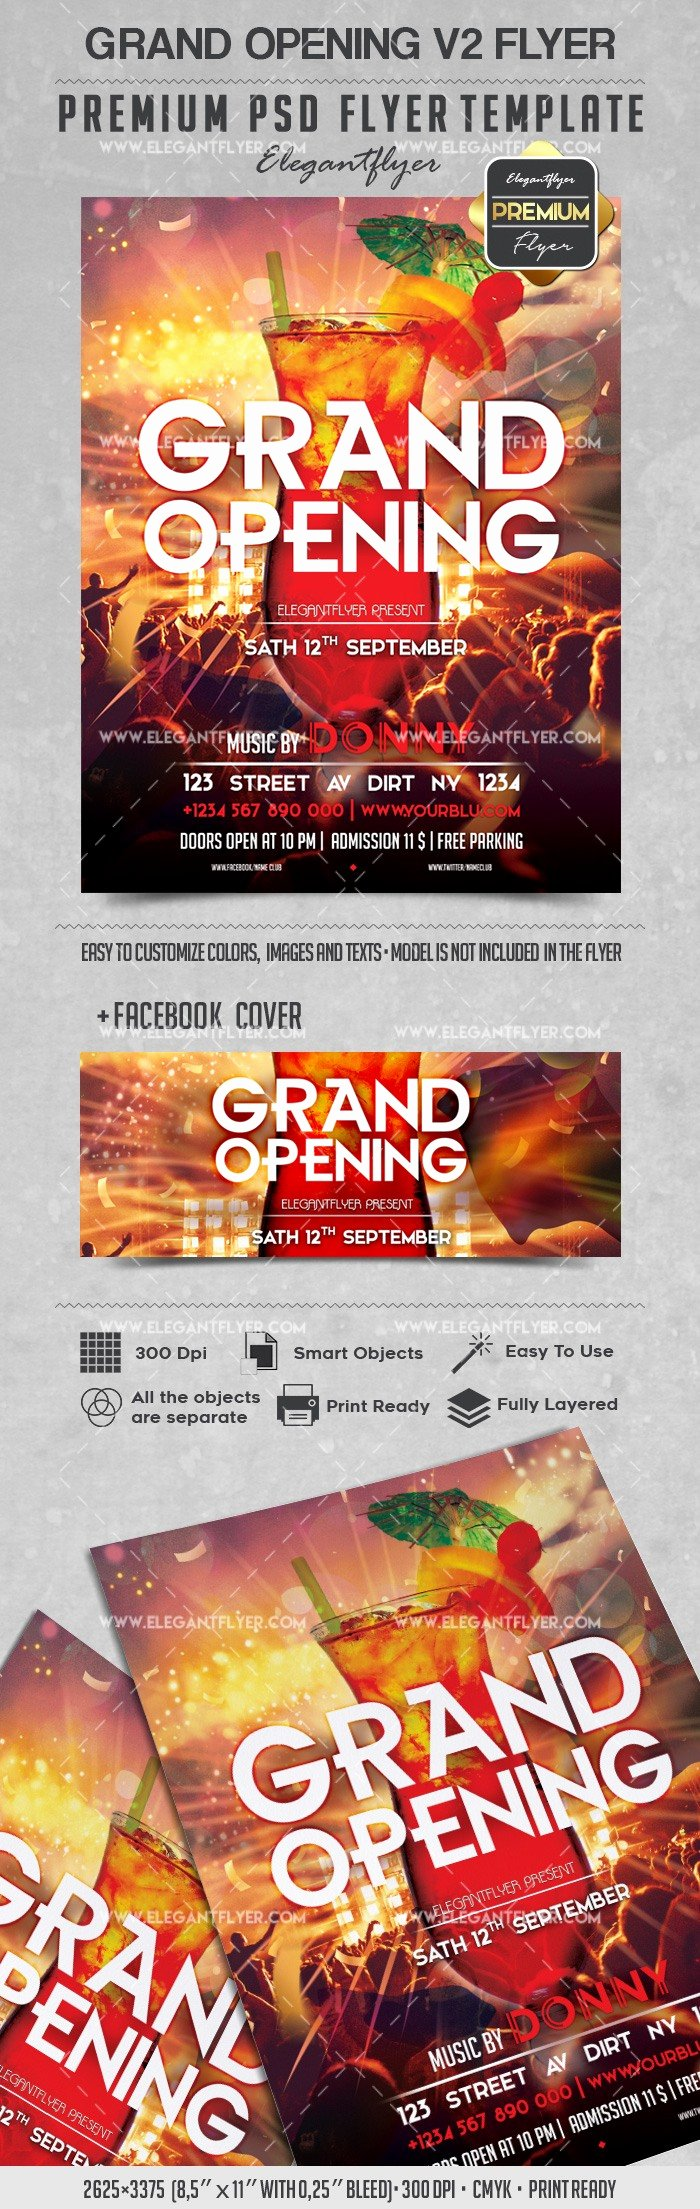 Grand Opening Flyer Template Luxury Grand Opening V2 – Flyer Psd Template – by Elegantflyer